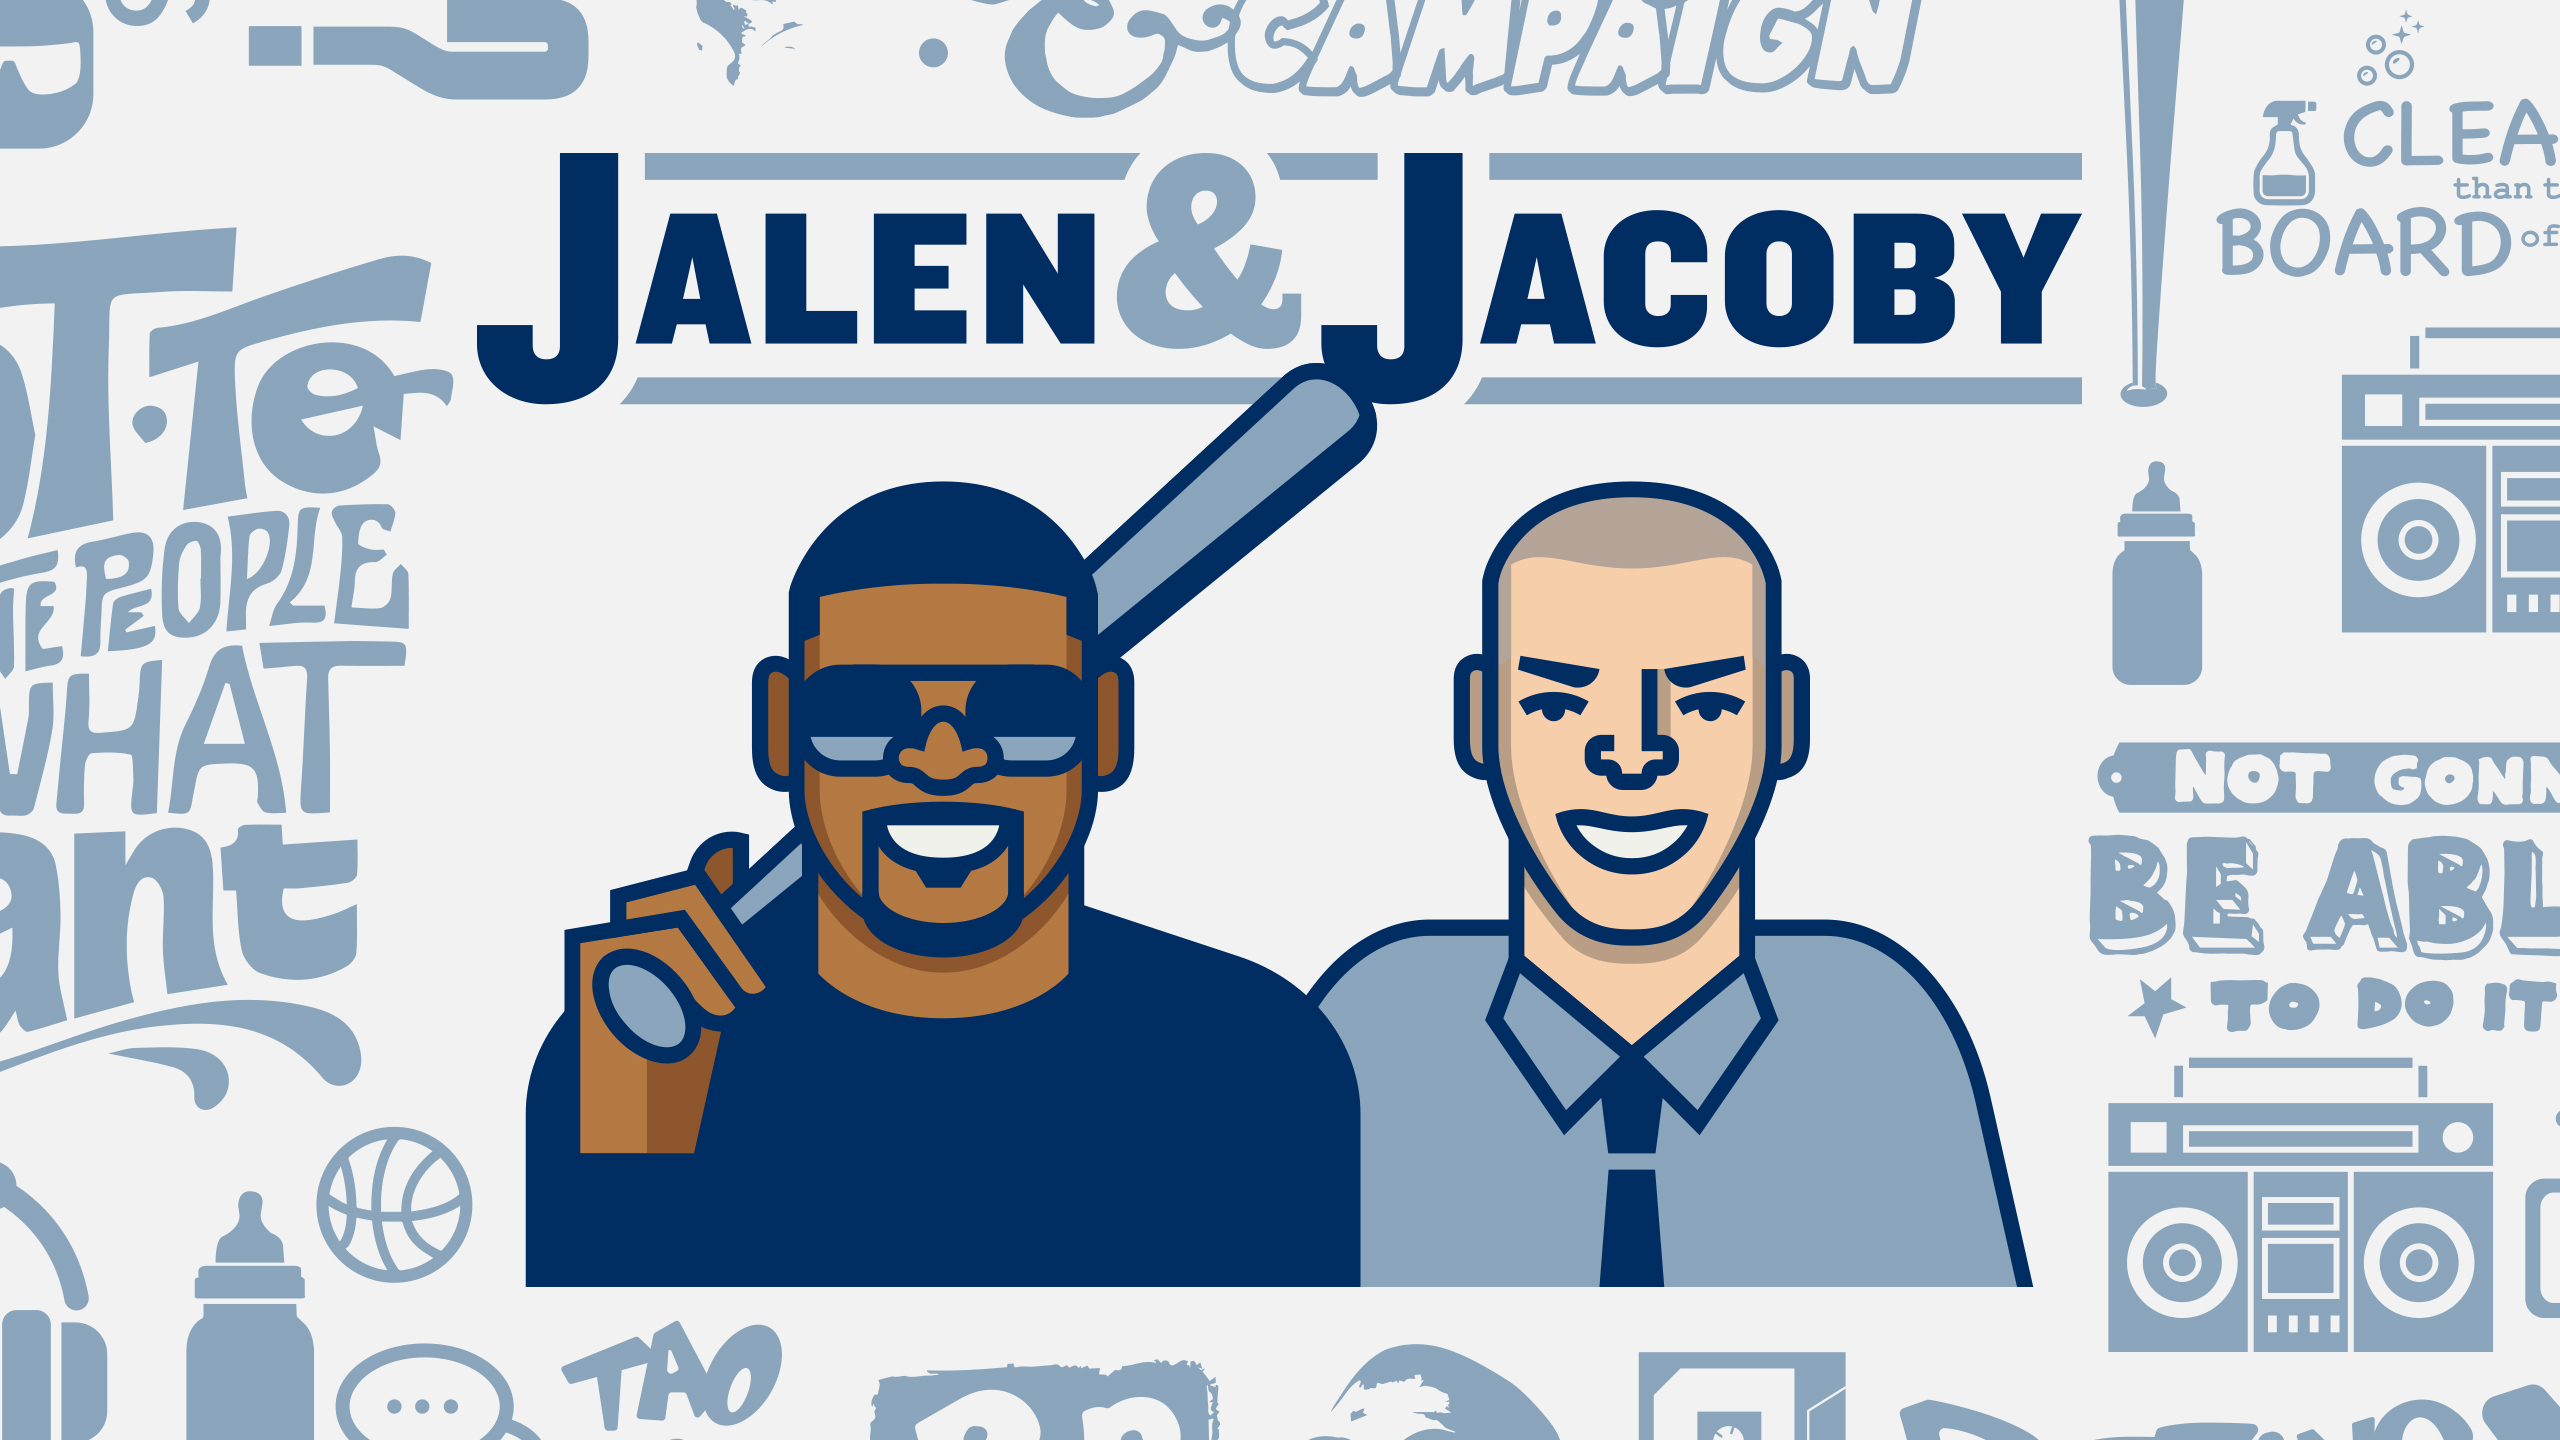 Thu, 12/13 - Jalen & Jacoby